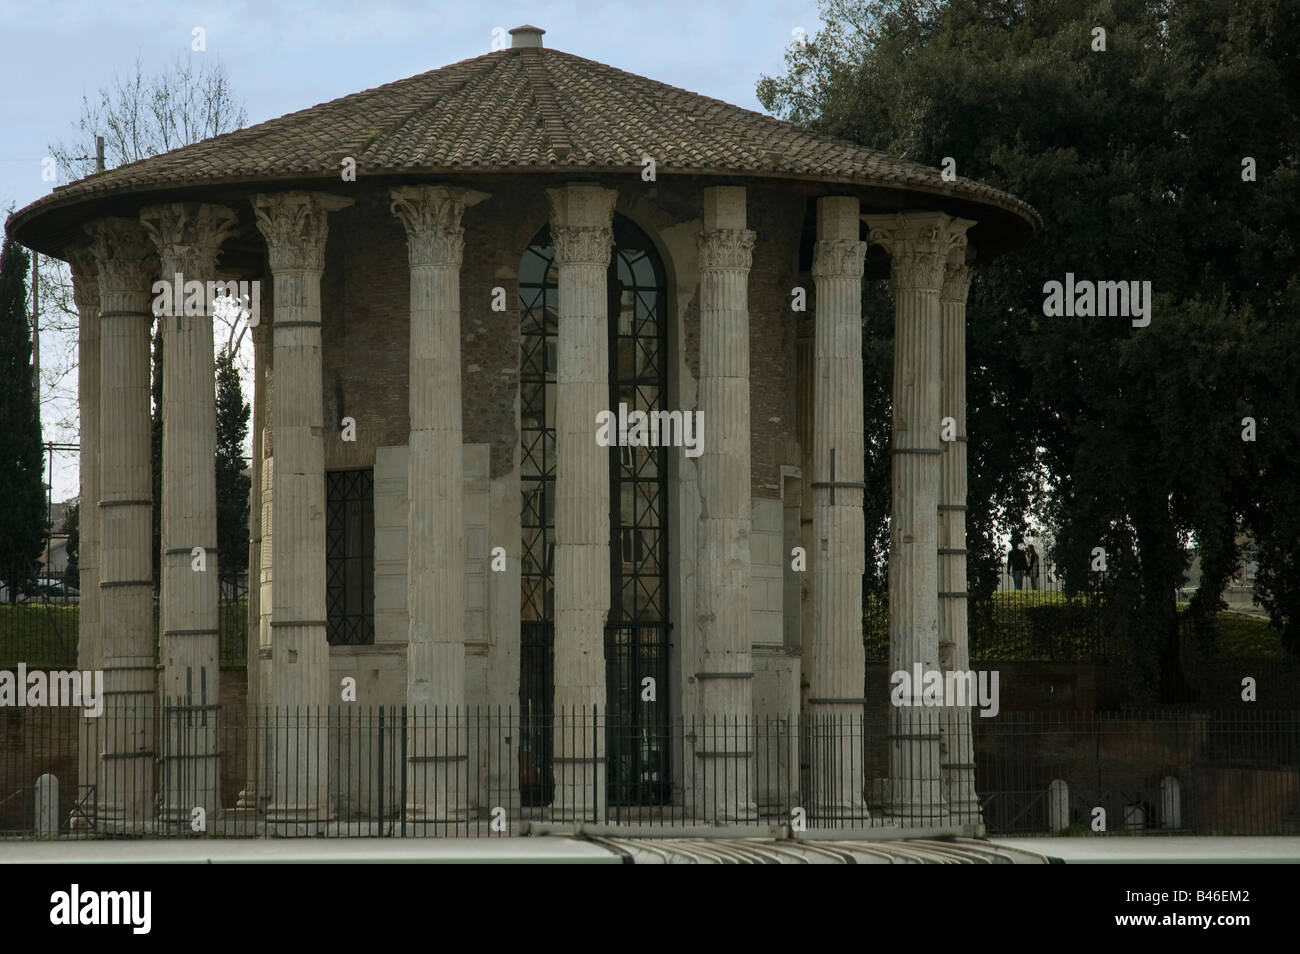 Temple of Hercule demigod of victory,Rome, Italy - Stock Image